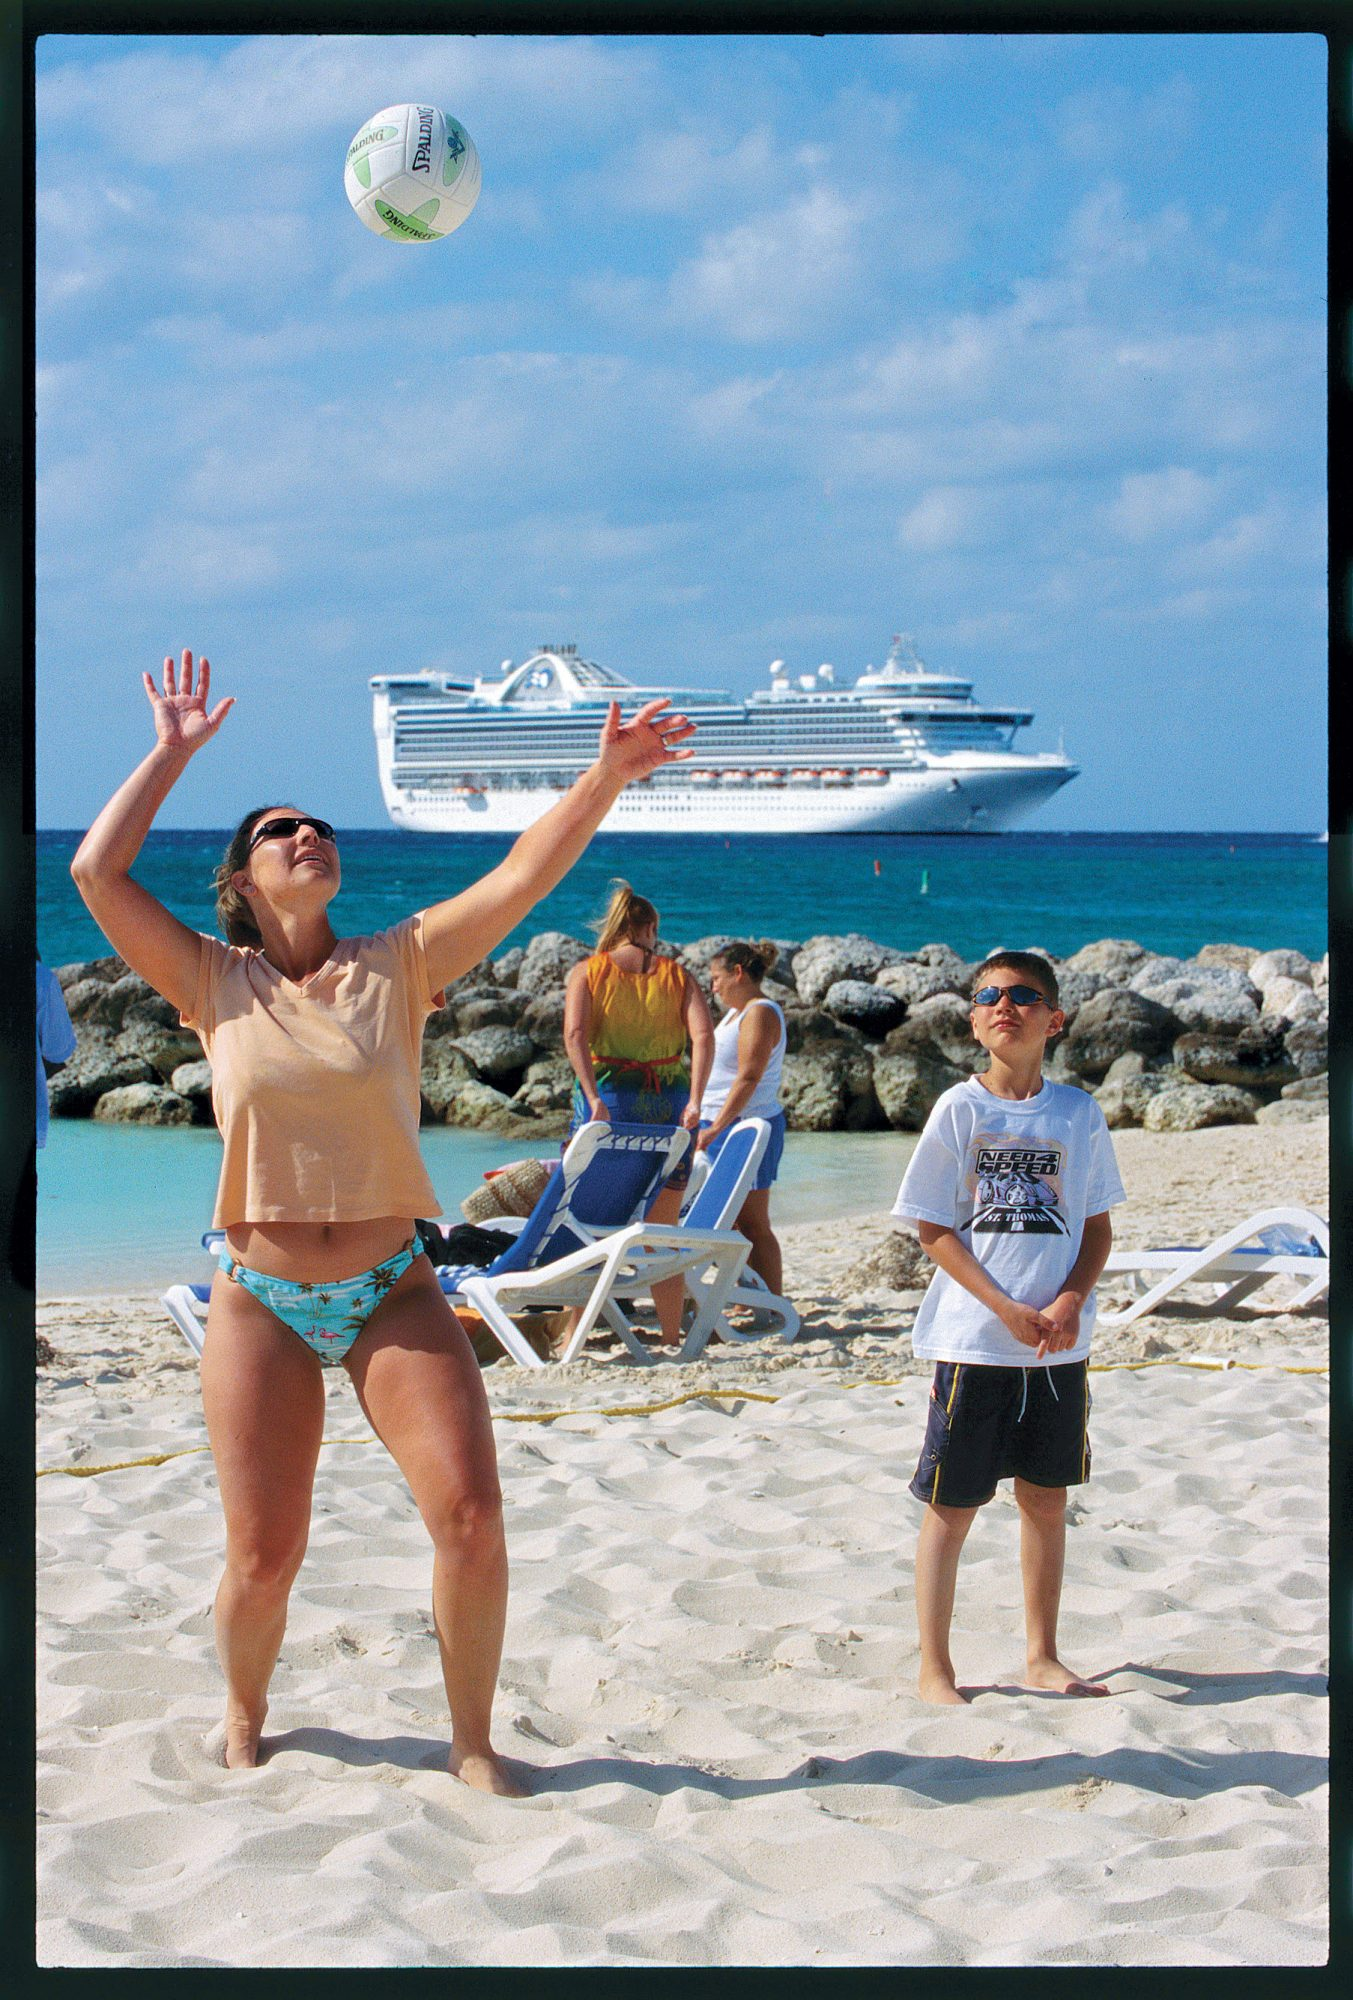 MAINSTREAM CRUISE LINES